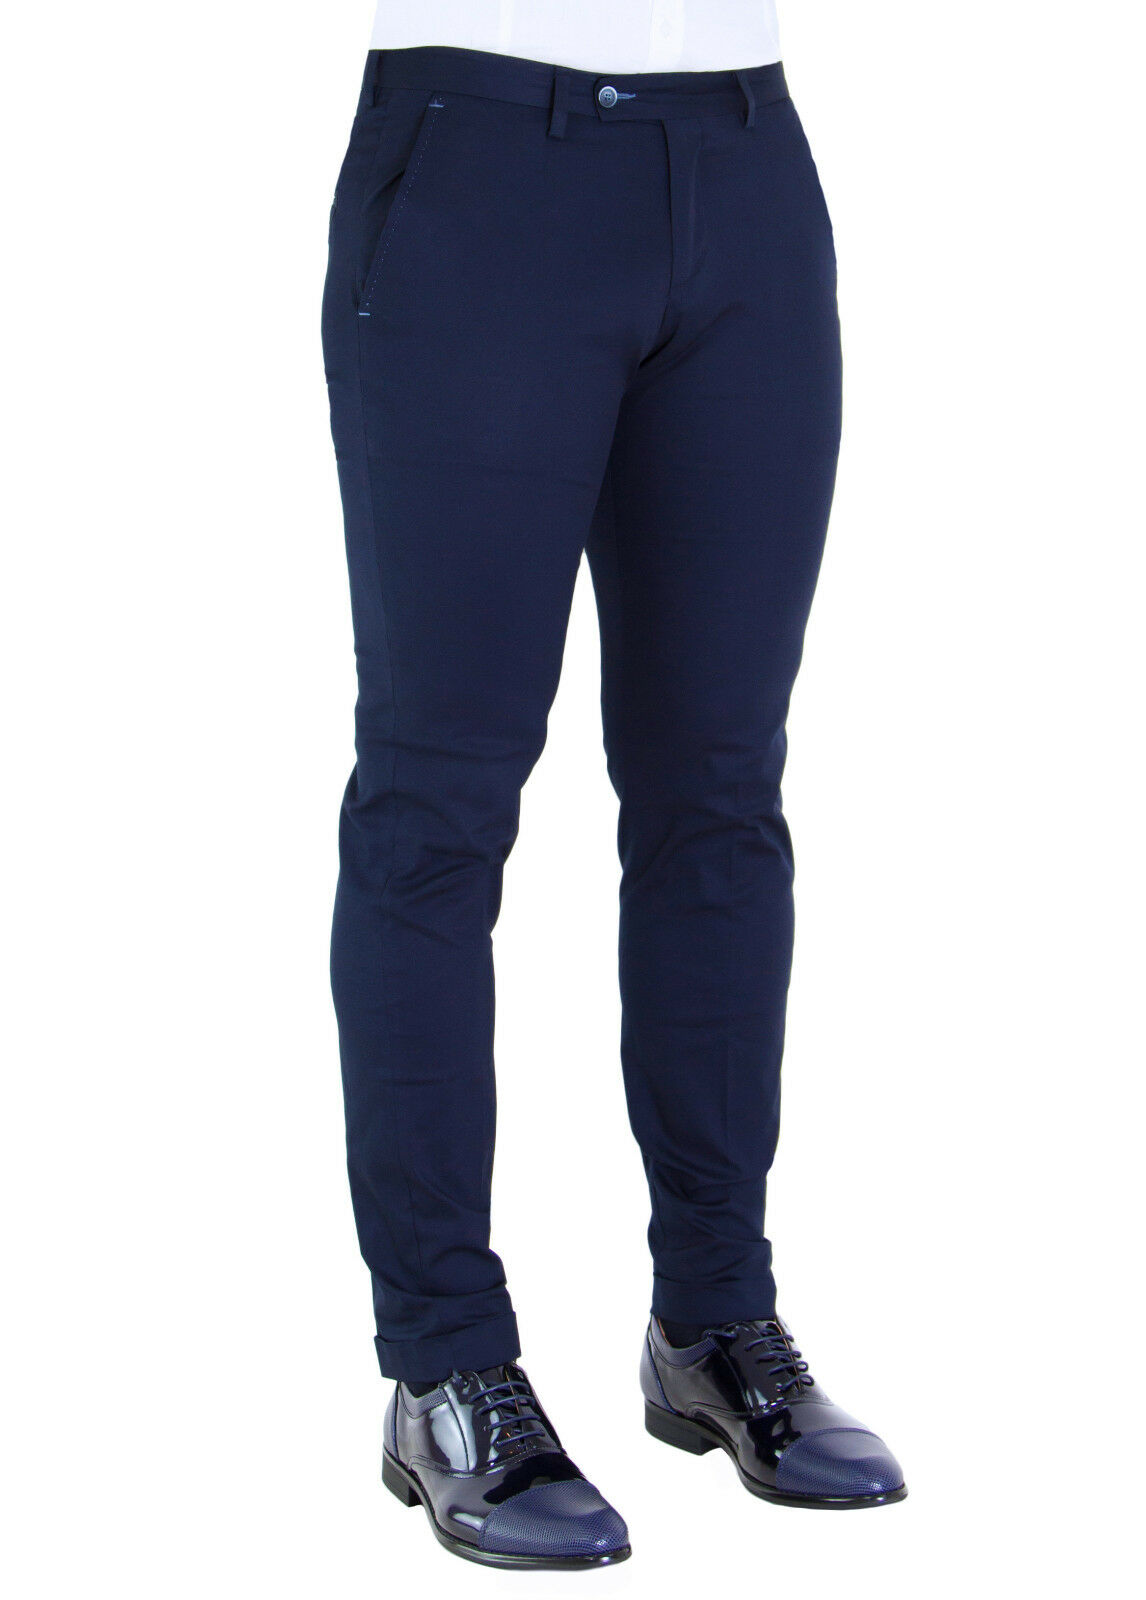 MEN'S TROUSERS TAILORING MADE IN ITALY NAVY blueE CASUAL ELEGANT COTTON STRETCH